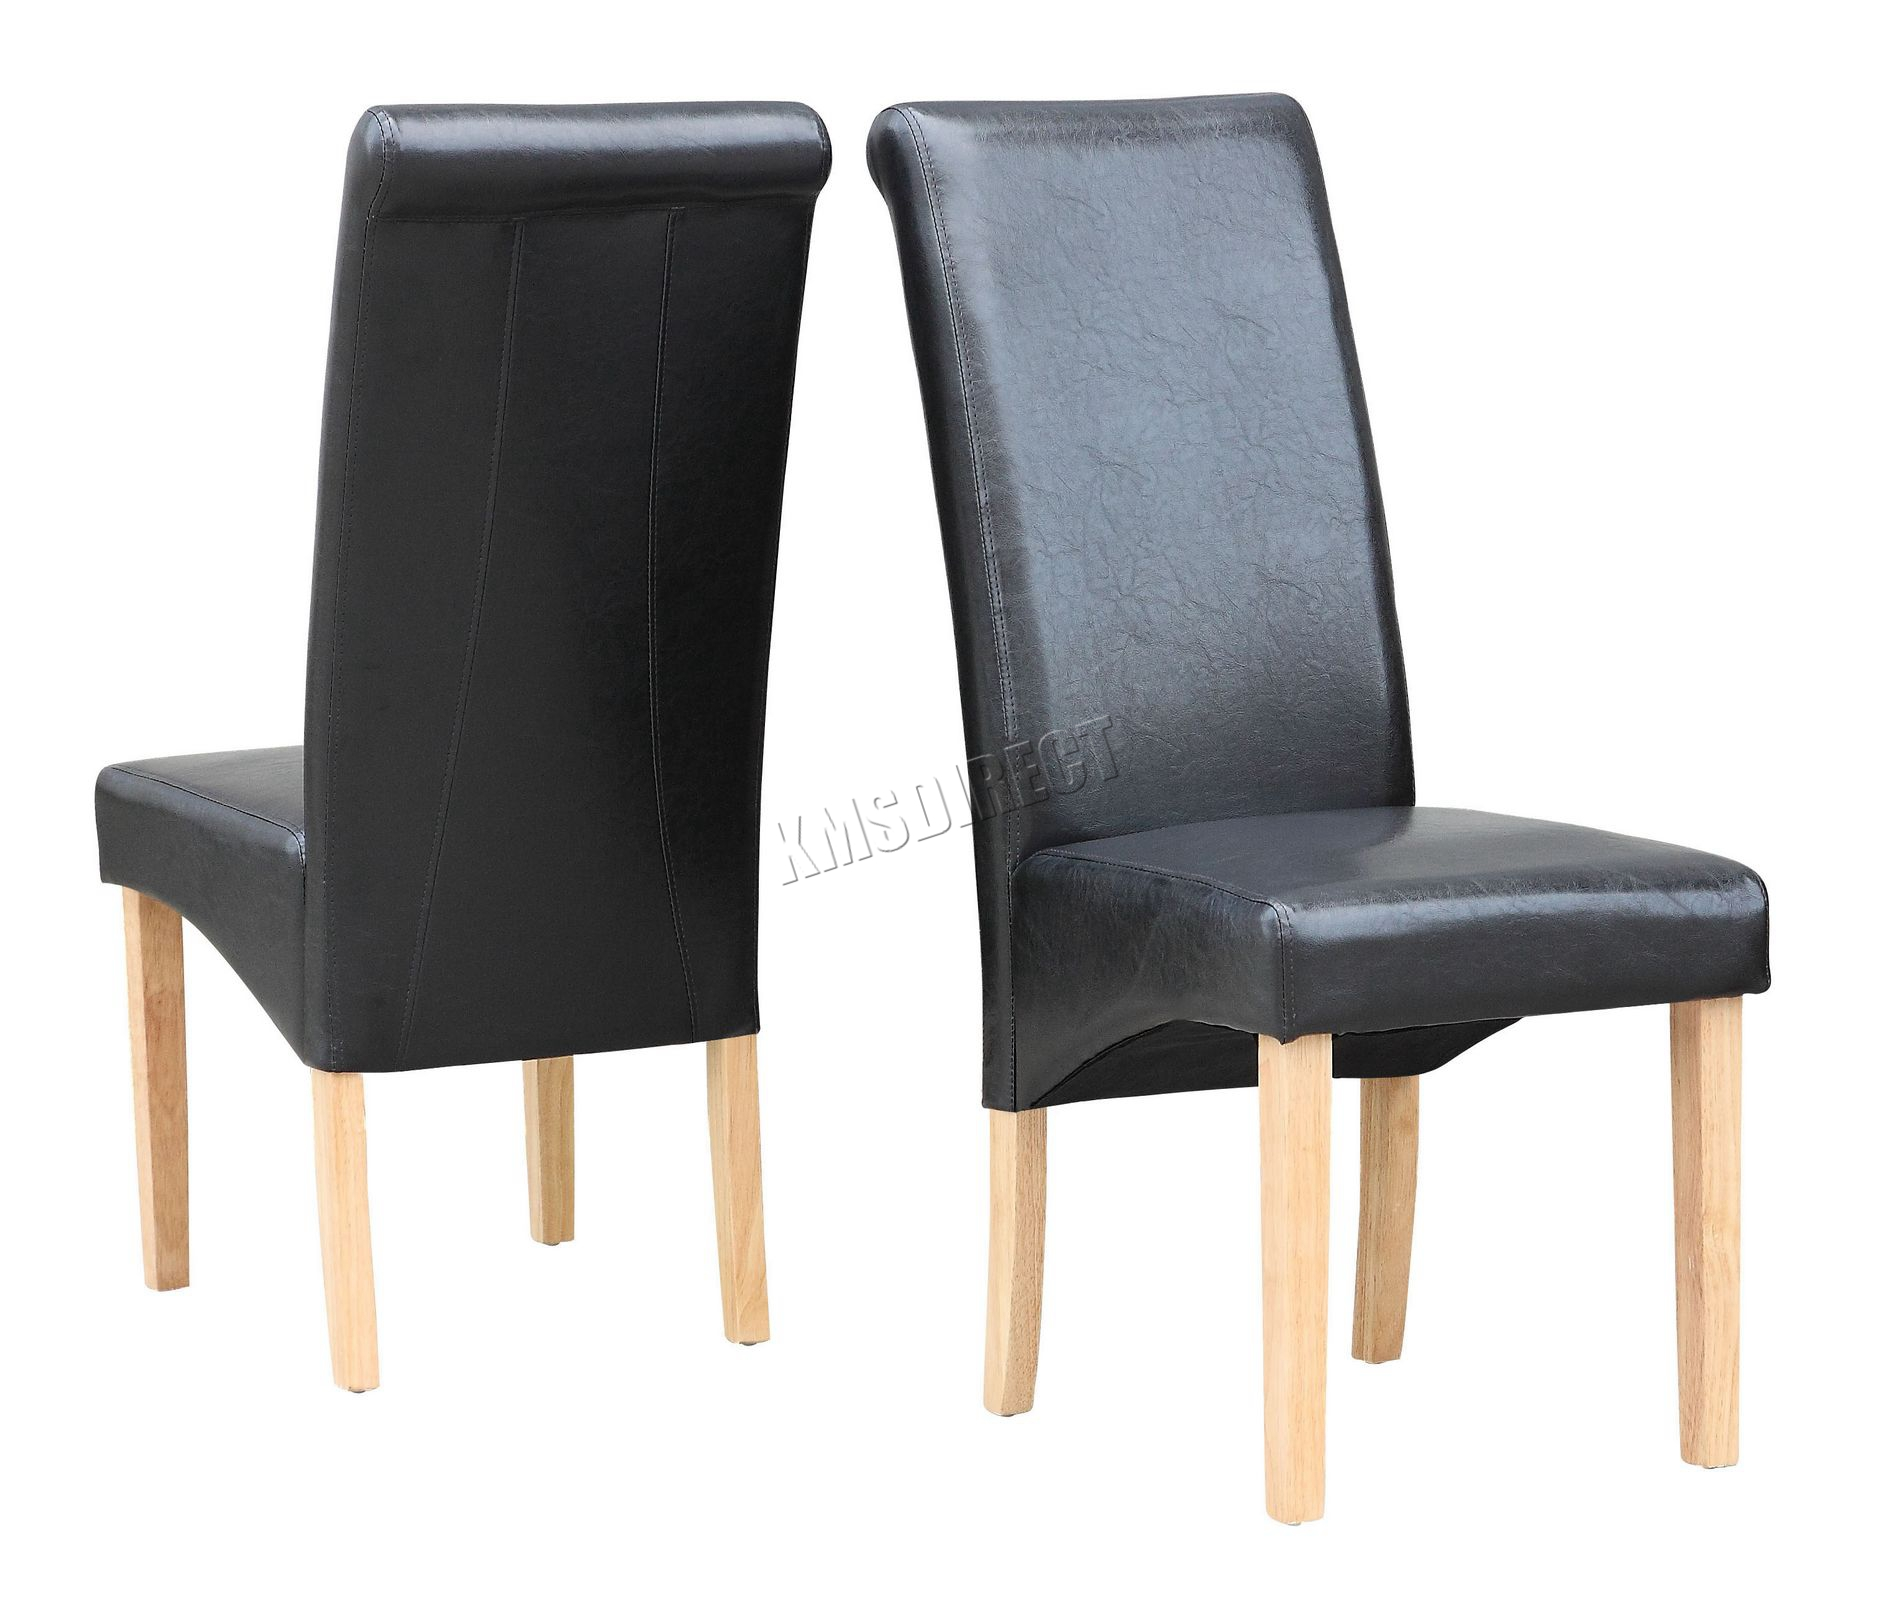 Black Leather Kitchen Chairs: New Black Faux Leather Dining Chairs Roll Top Scroll High